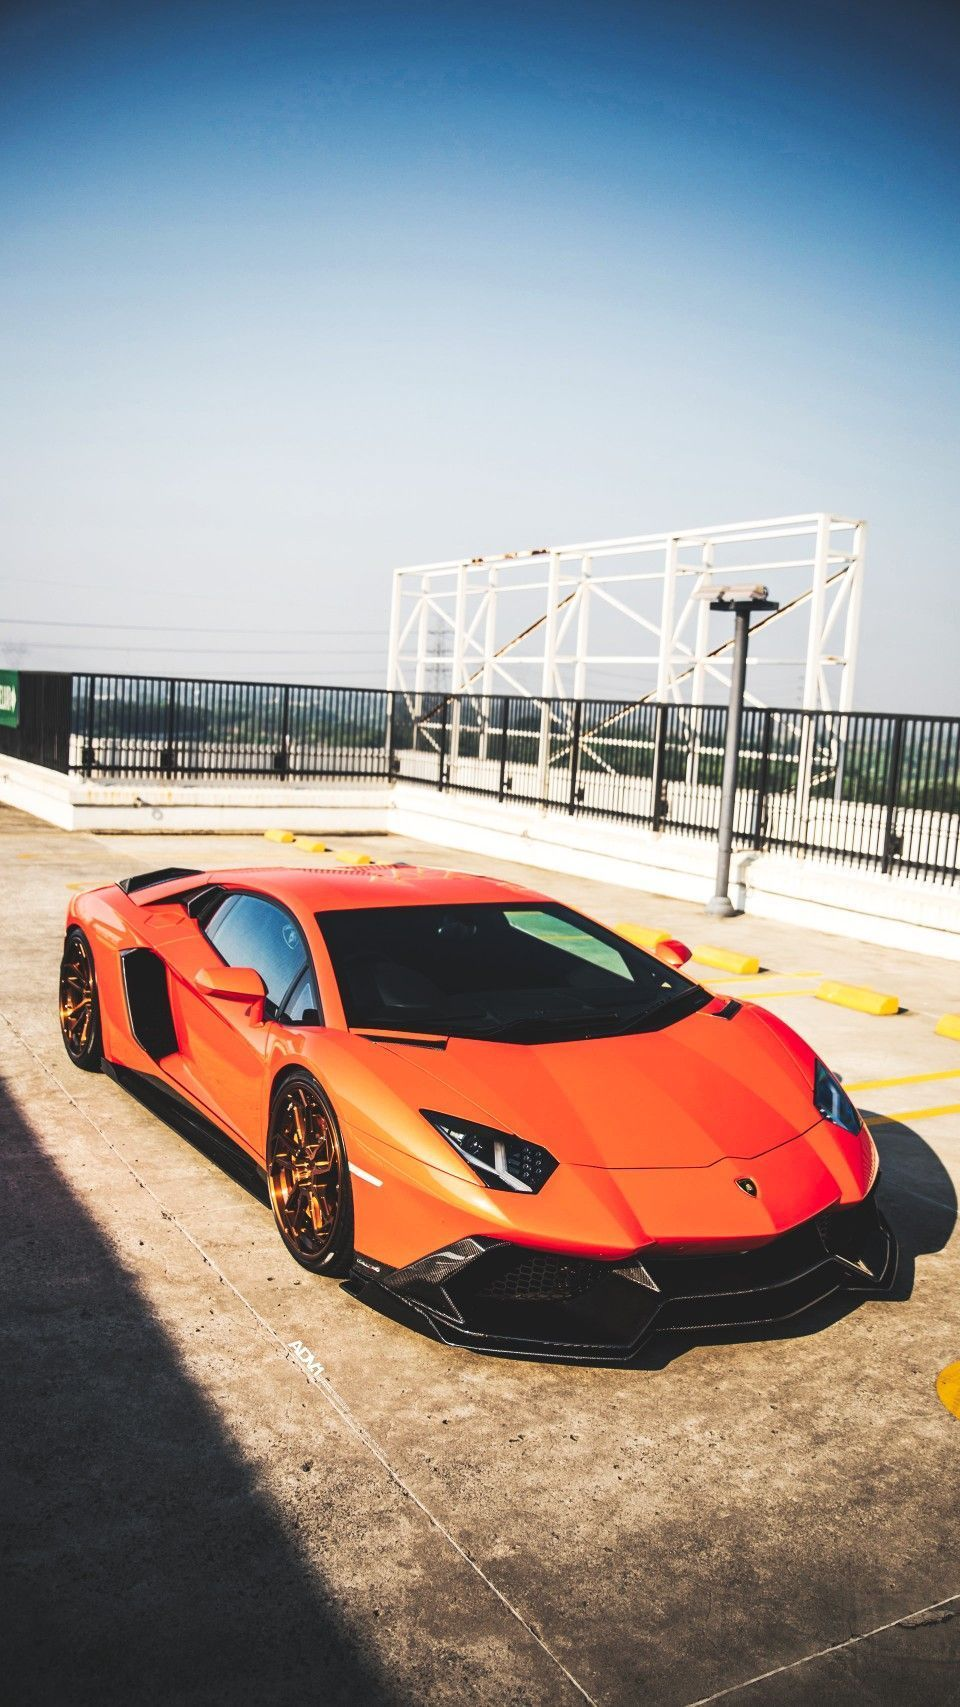 1080x1920 My List Of Jdm Wallpaper Pictures For Your Phone 4k Wallpaper In 2020 Lamborghini Aventador Lamborghini Aventador Wallpaper Lamborghini Wallpaper Iphone